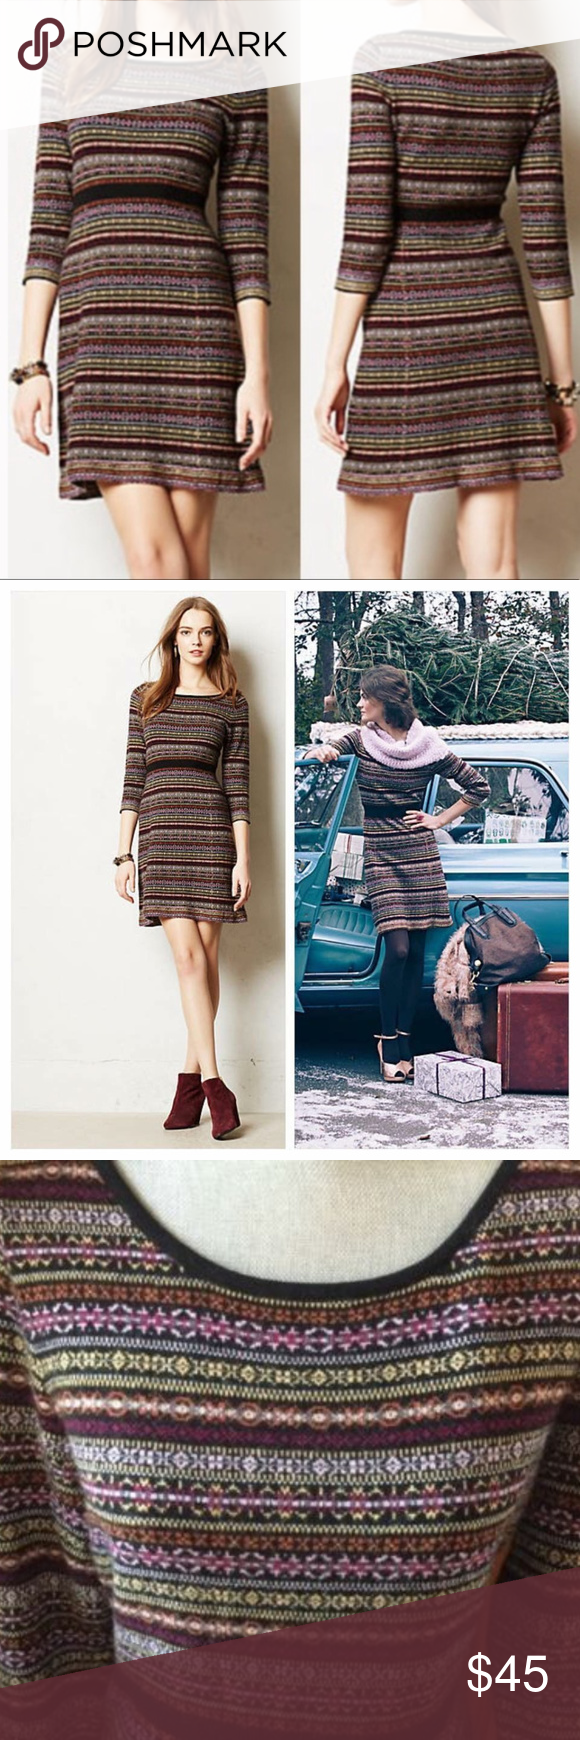 671ec87cdb9 Anthropologie Sparrow Clara Sweater Dress Pre-owned - bought and never wore  myself. No